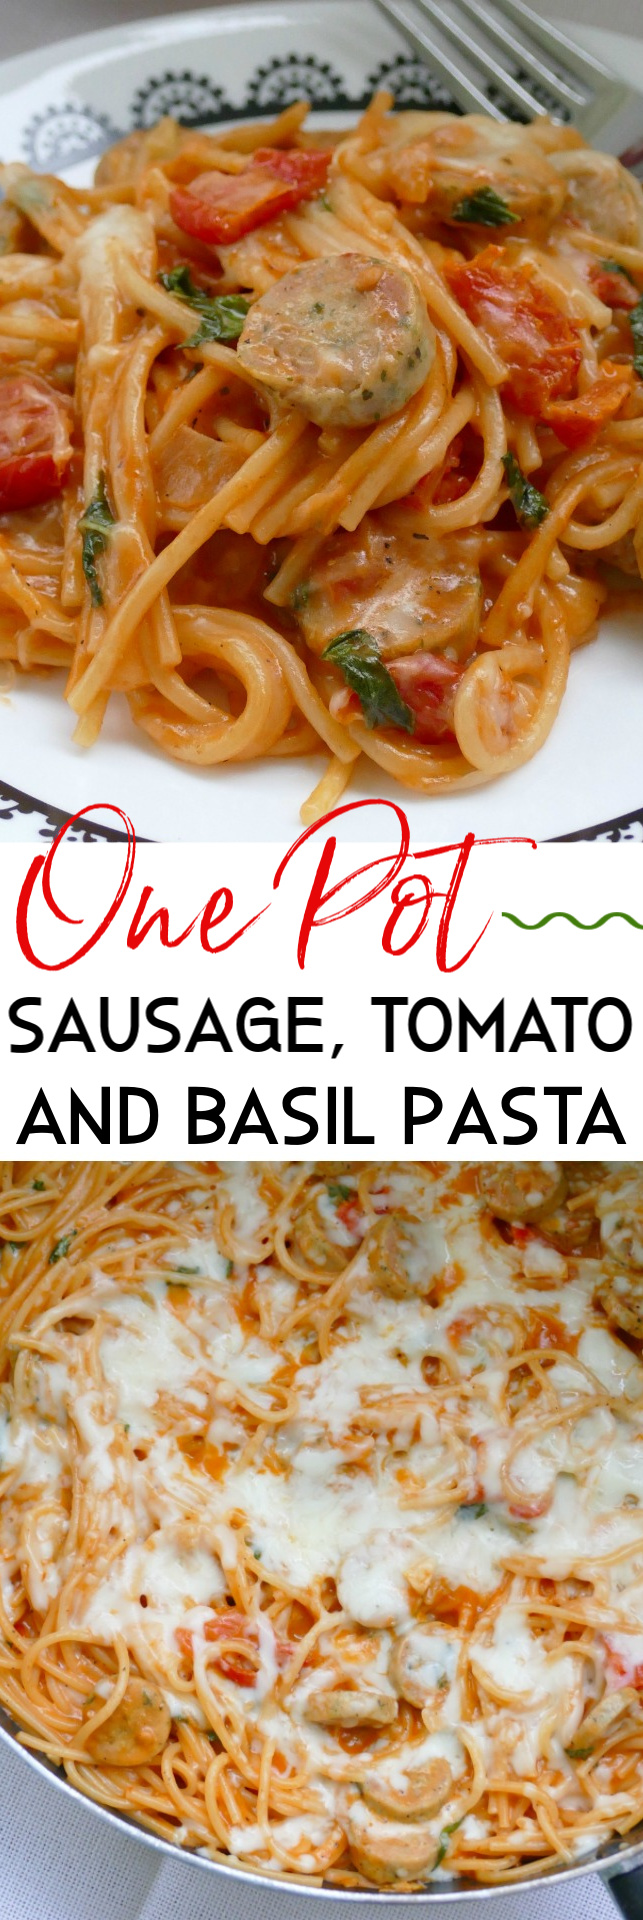 This easy dinner idea is ready in 30 minutes and is made in one pot! So simple, affordable and delicious! Great for busy weeknights and the leftovers are perfect for lunch the next day!